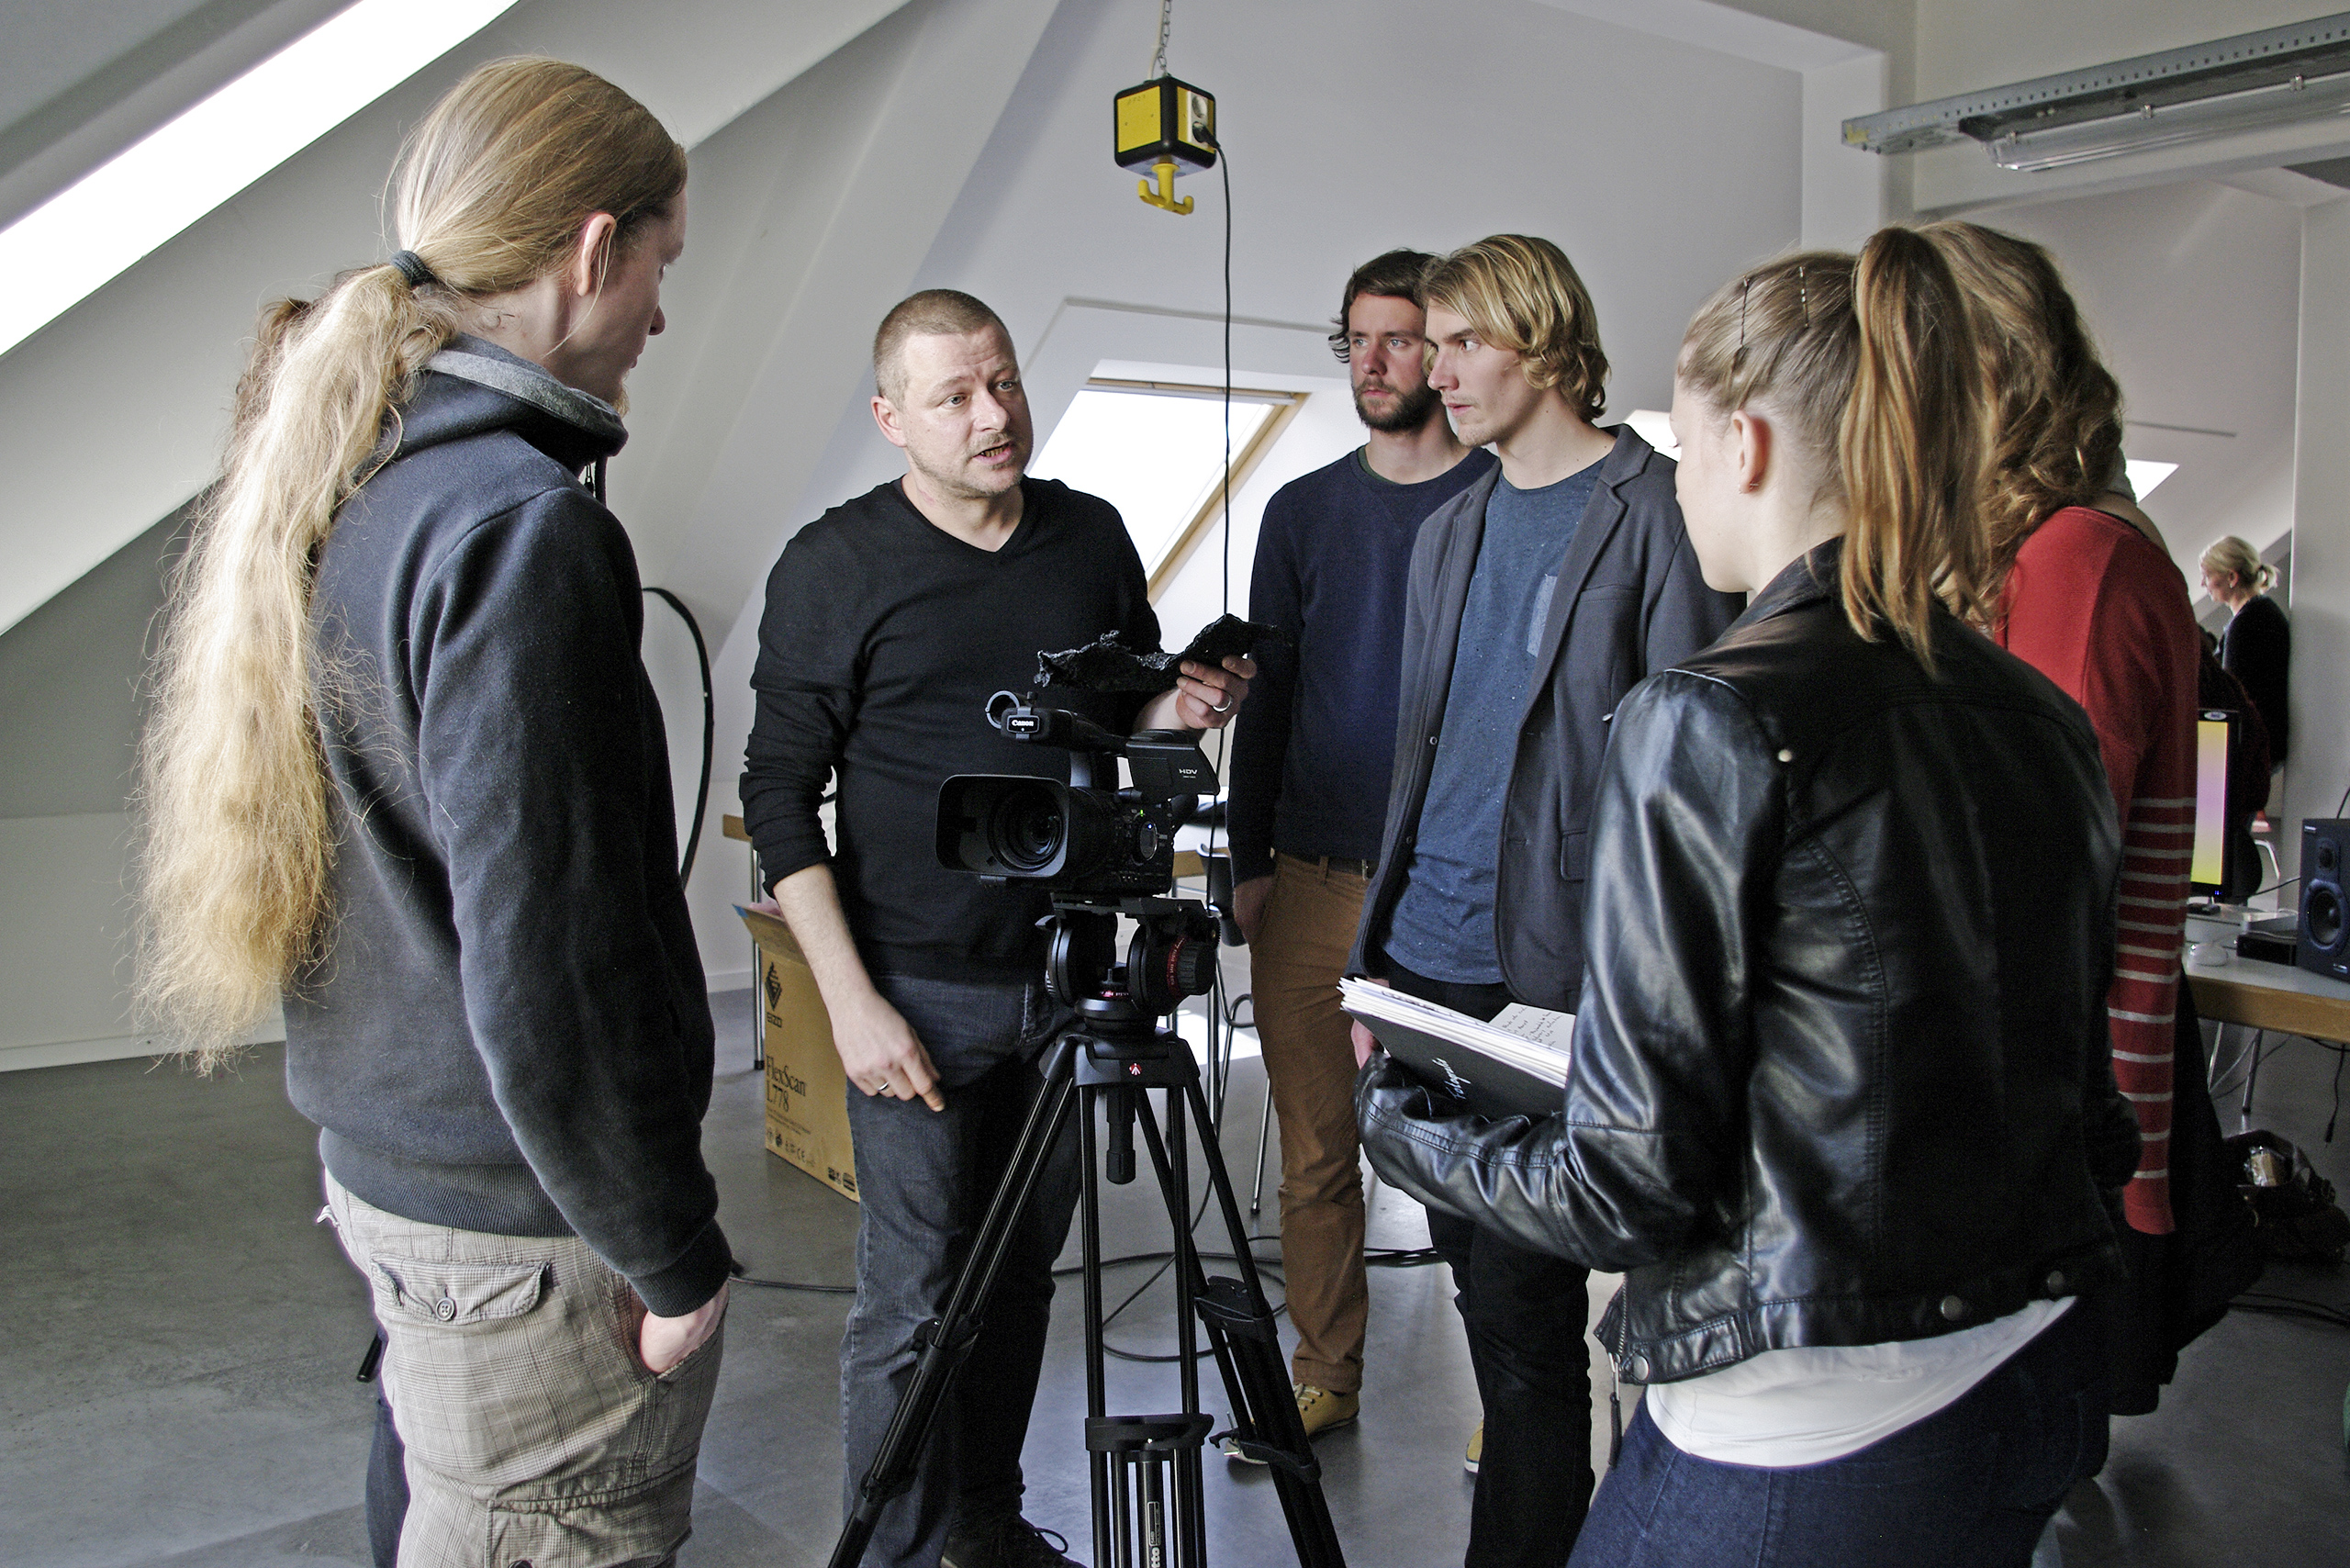 Documentary film workshop with Joanna Maxellon (far right in the back) & Harald Jantschke (at the camera) to prepare the students for the bicycle/documentary excursion to the DMY in Berlin